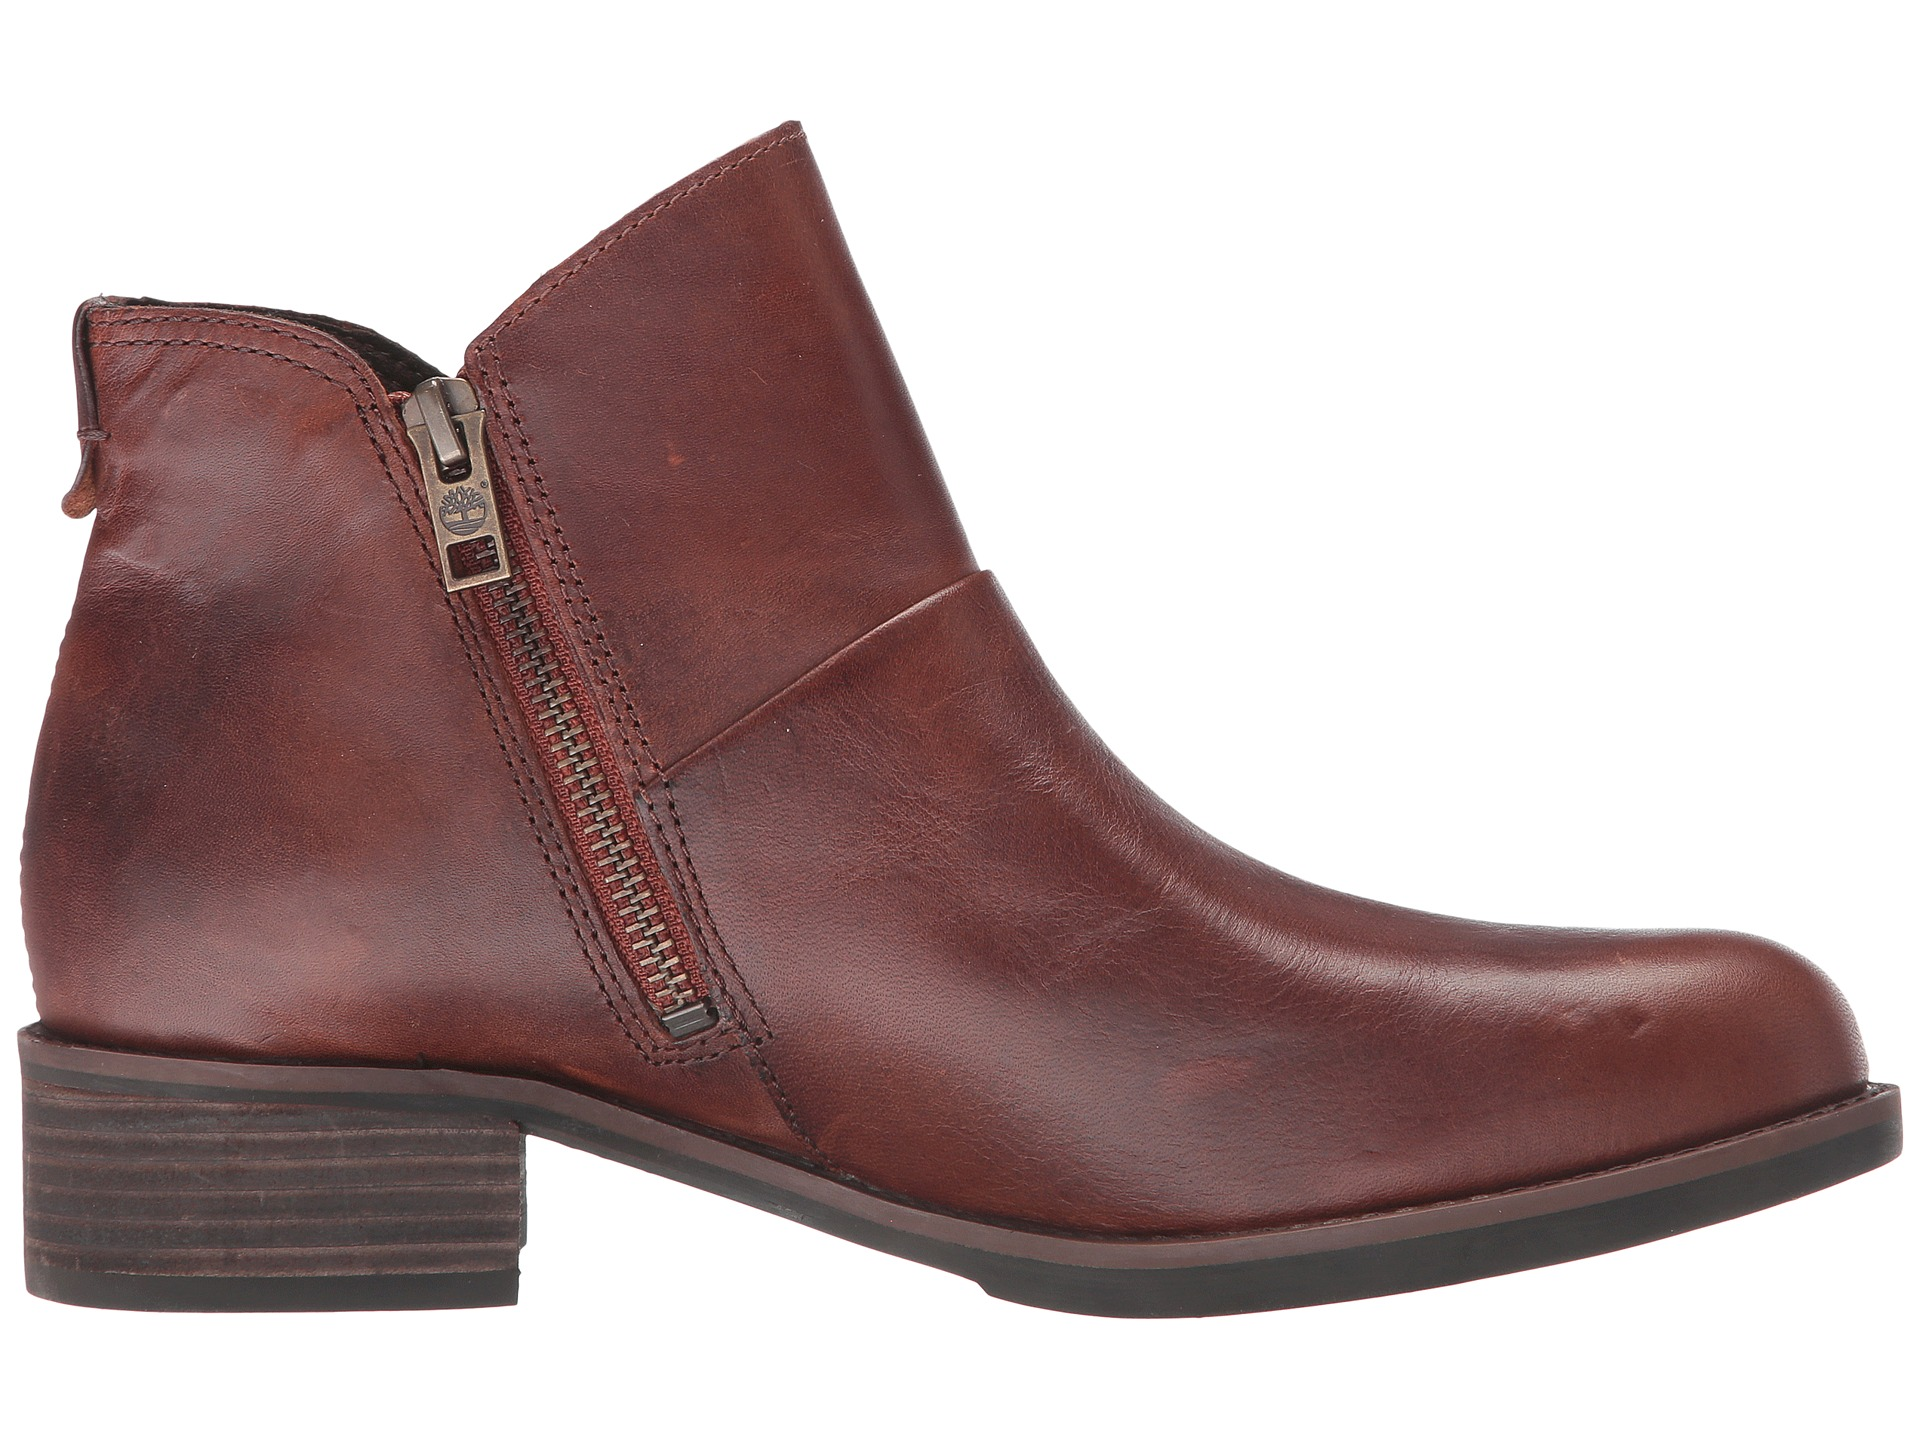 Timberland Beckwith Side Zip Chelsea Boot At Zappos Com